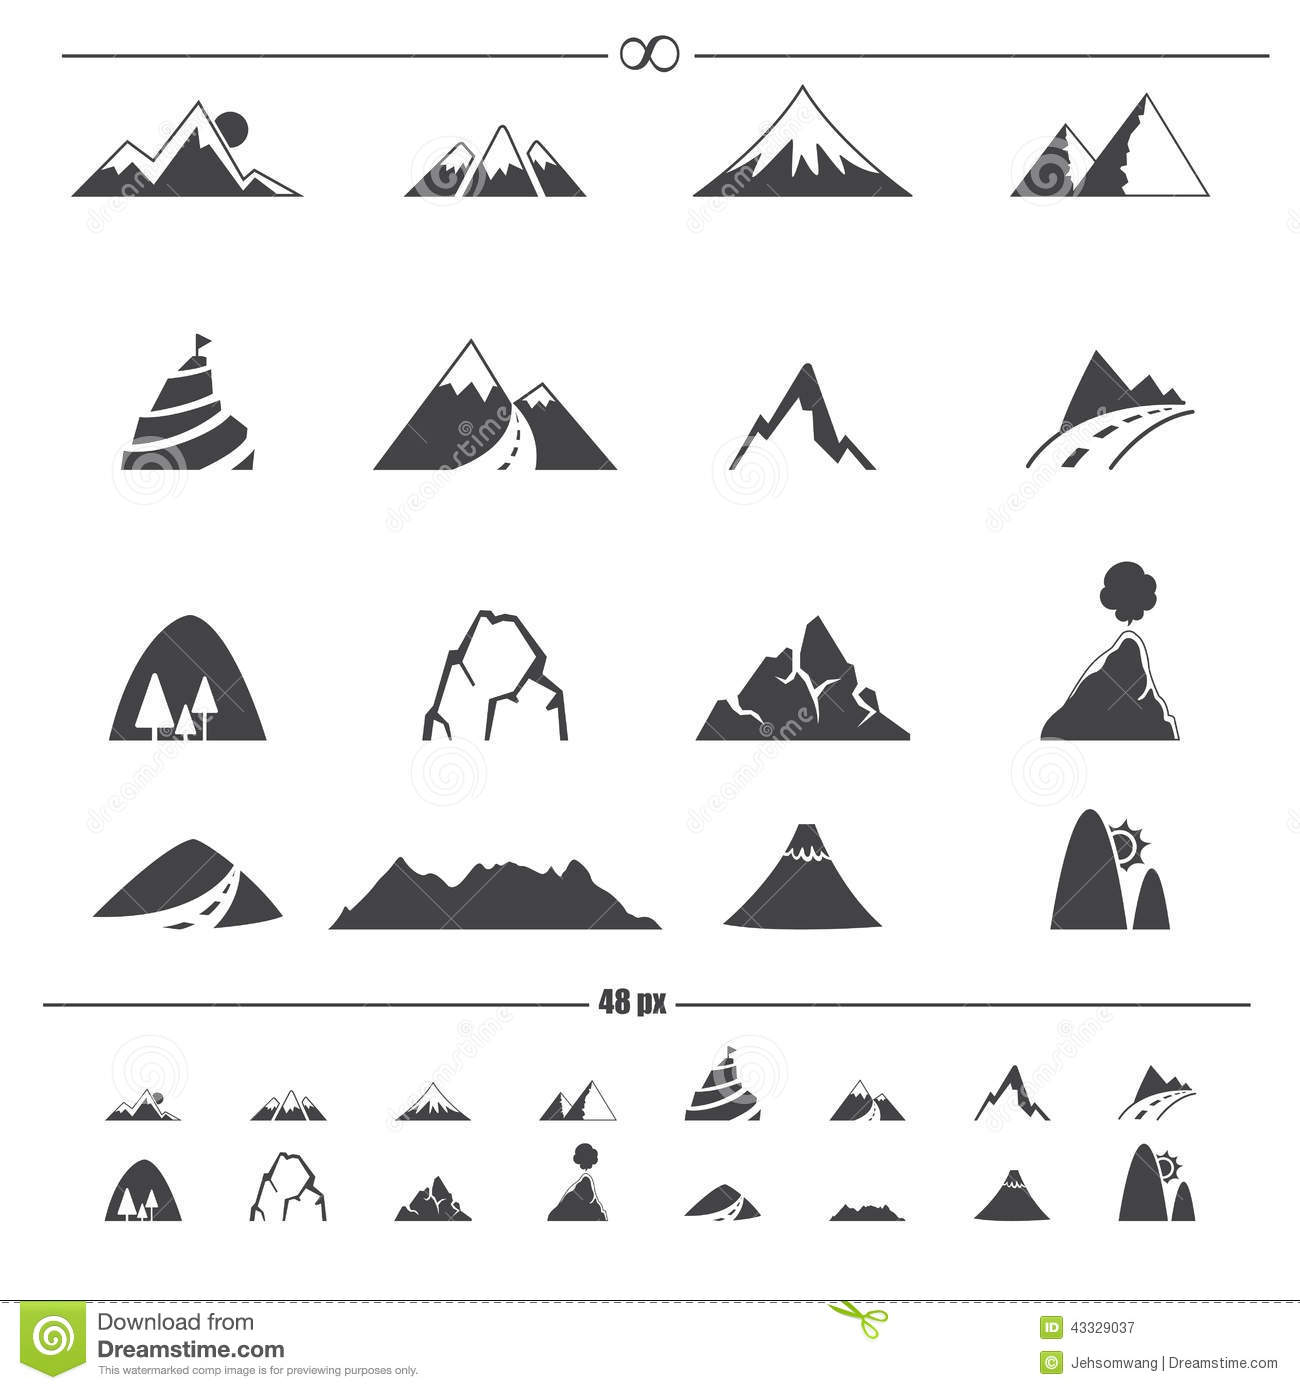 Mountain Icons Vector Stock Vector - Image: 43329037